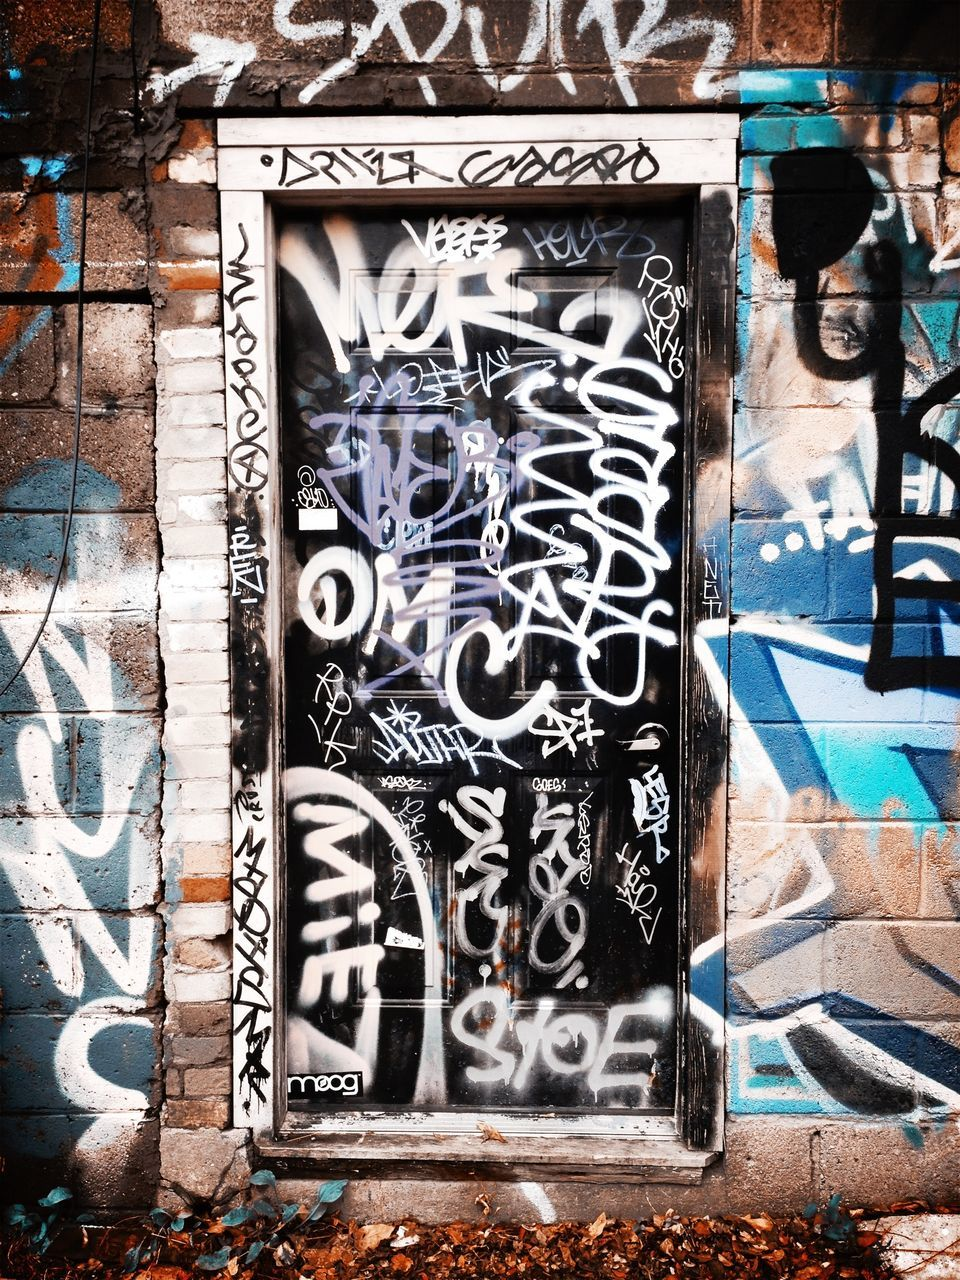 graffiti, text, art and craft, street art, day, outdoors, building exterior, no people, painted image, built structure, architecture, close-up